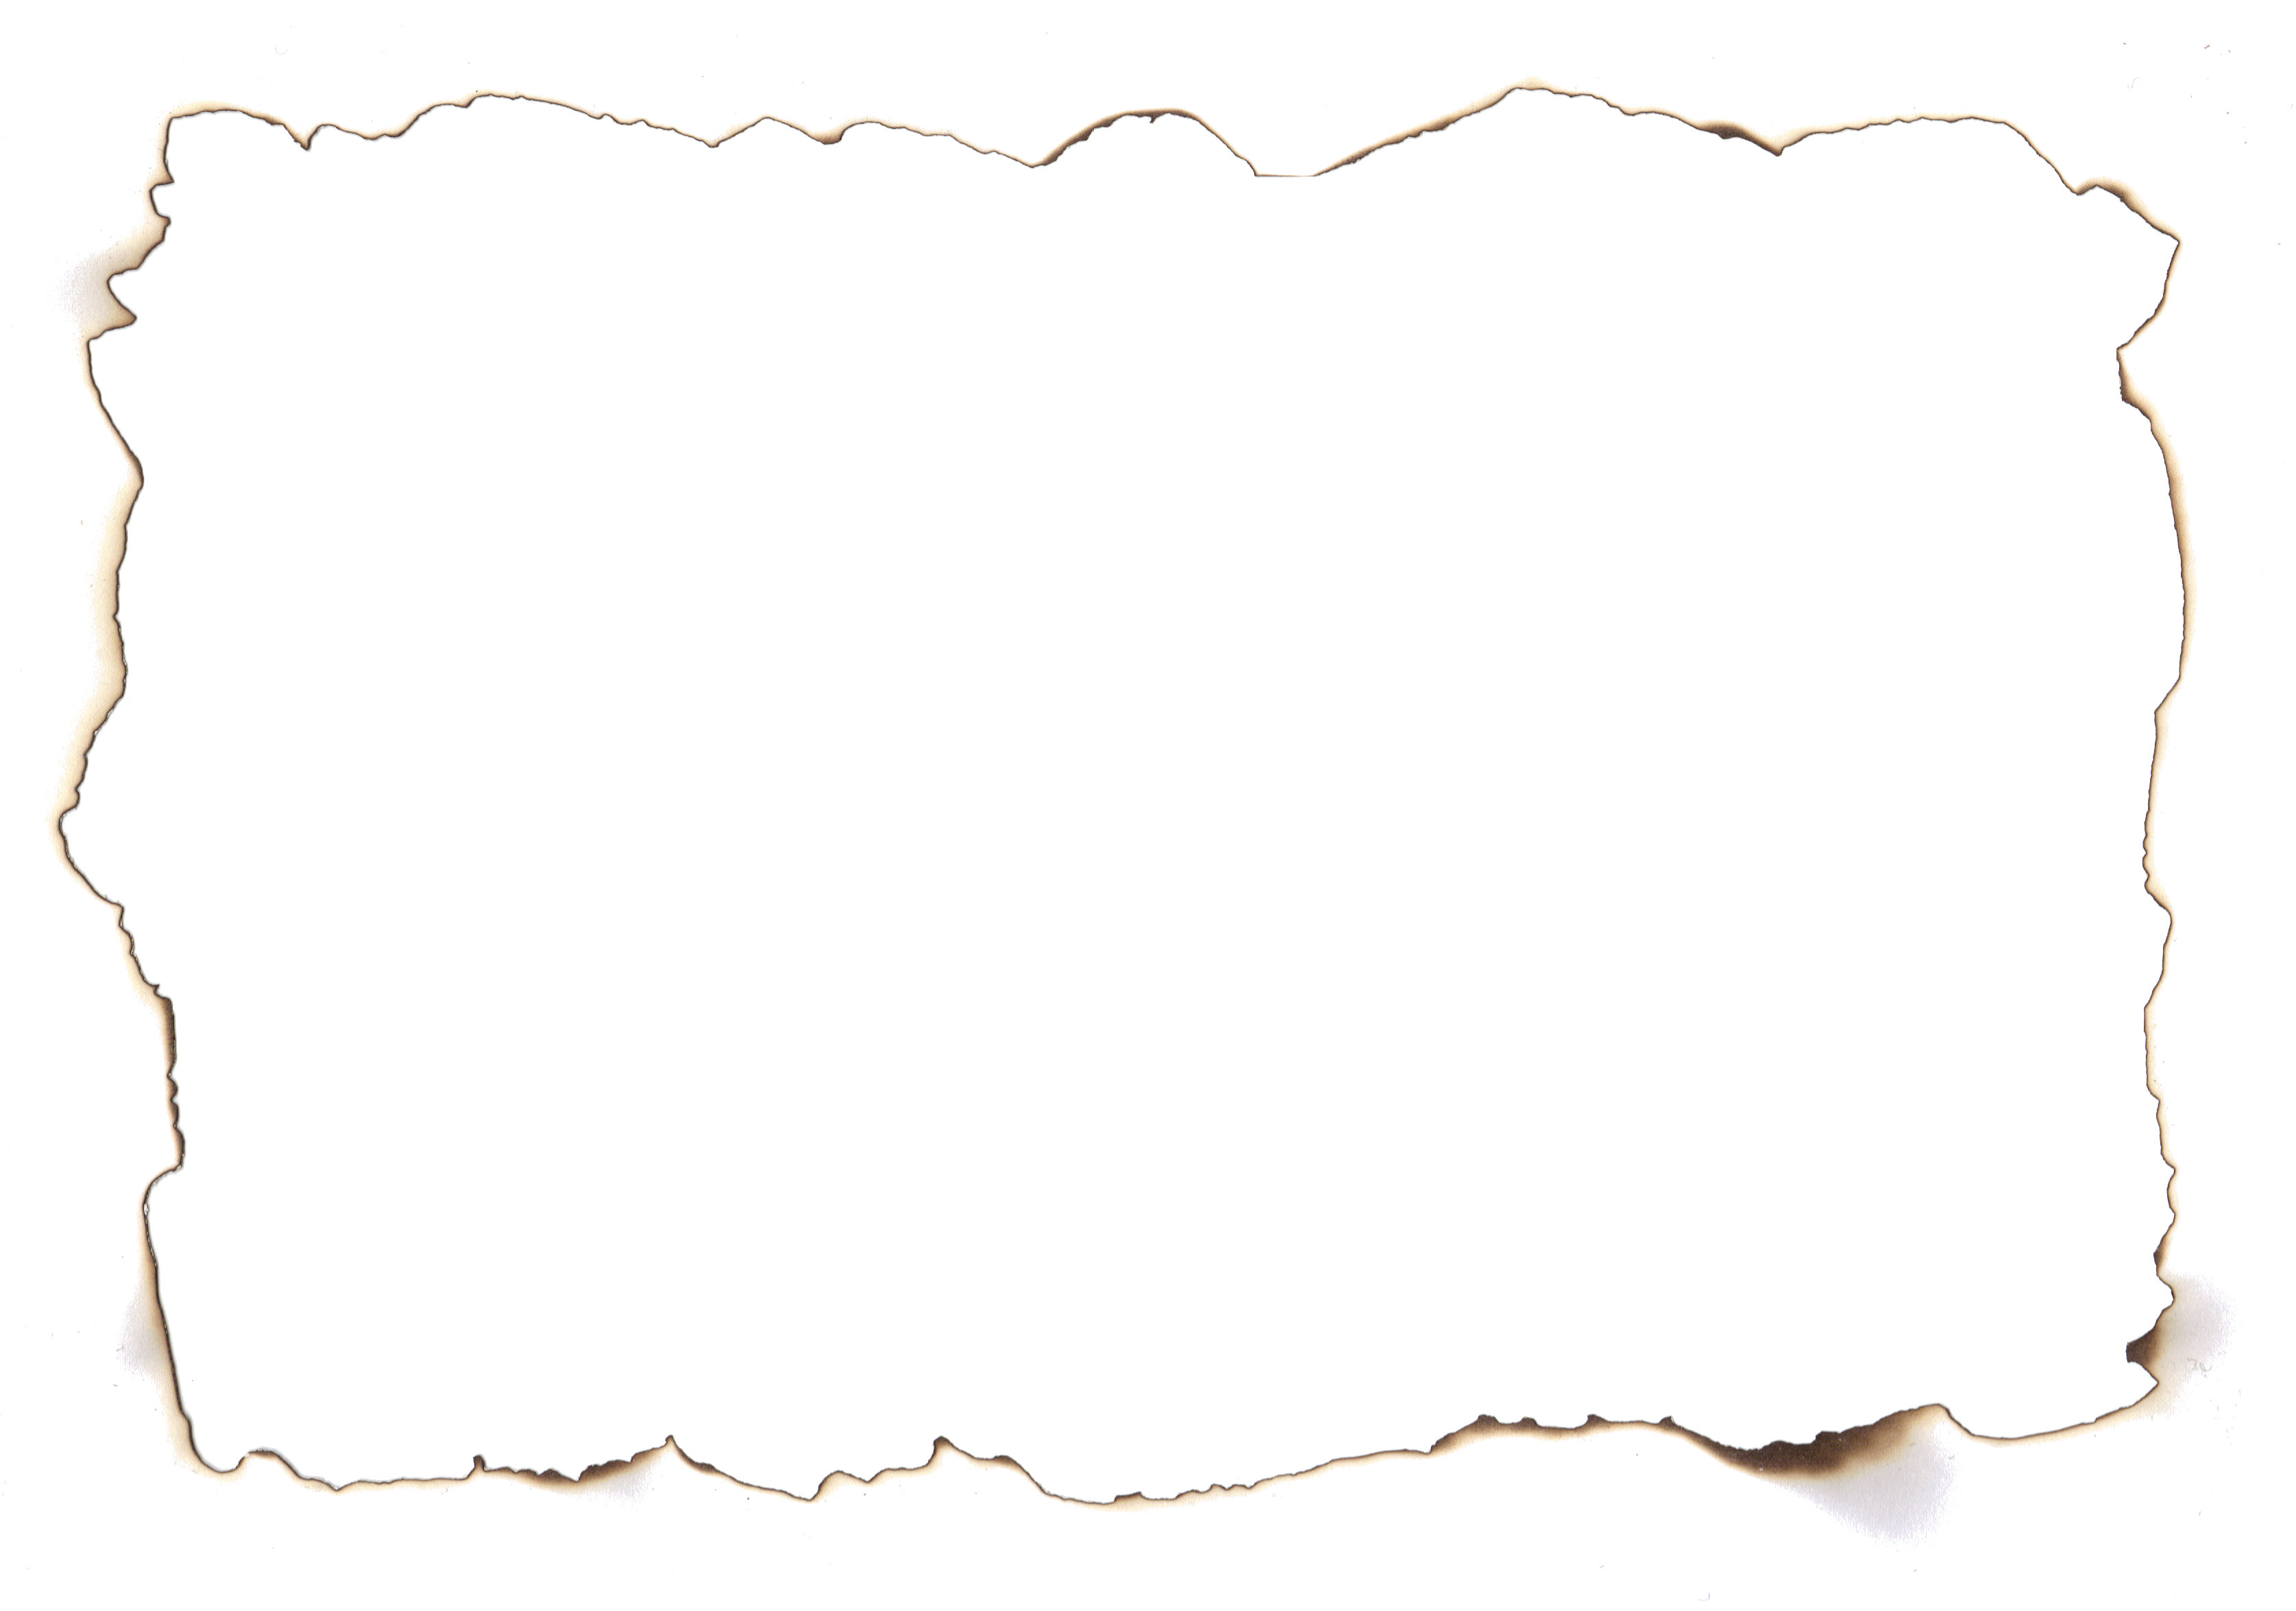 free download burned paper frame 1jpg